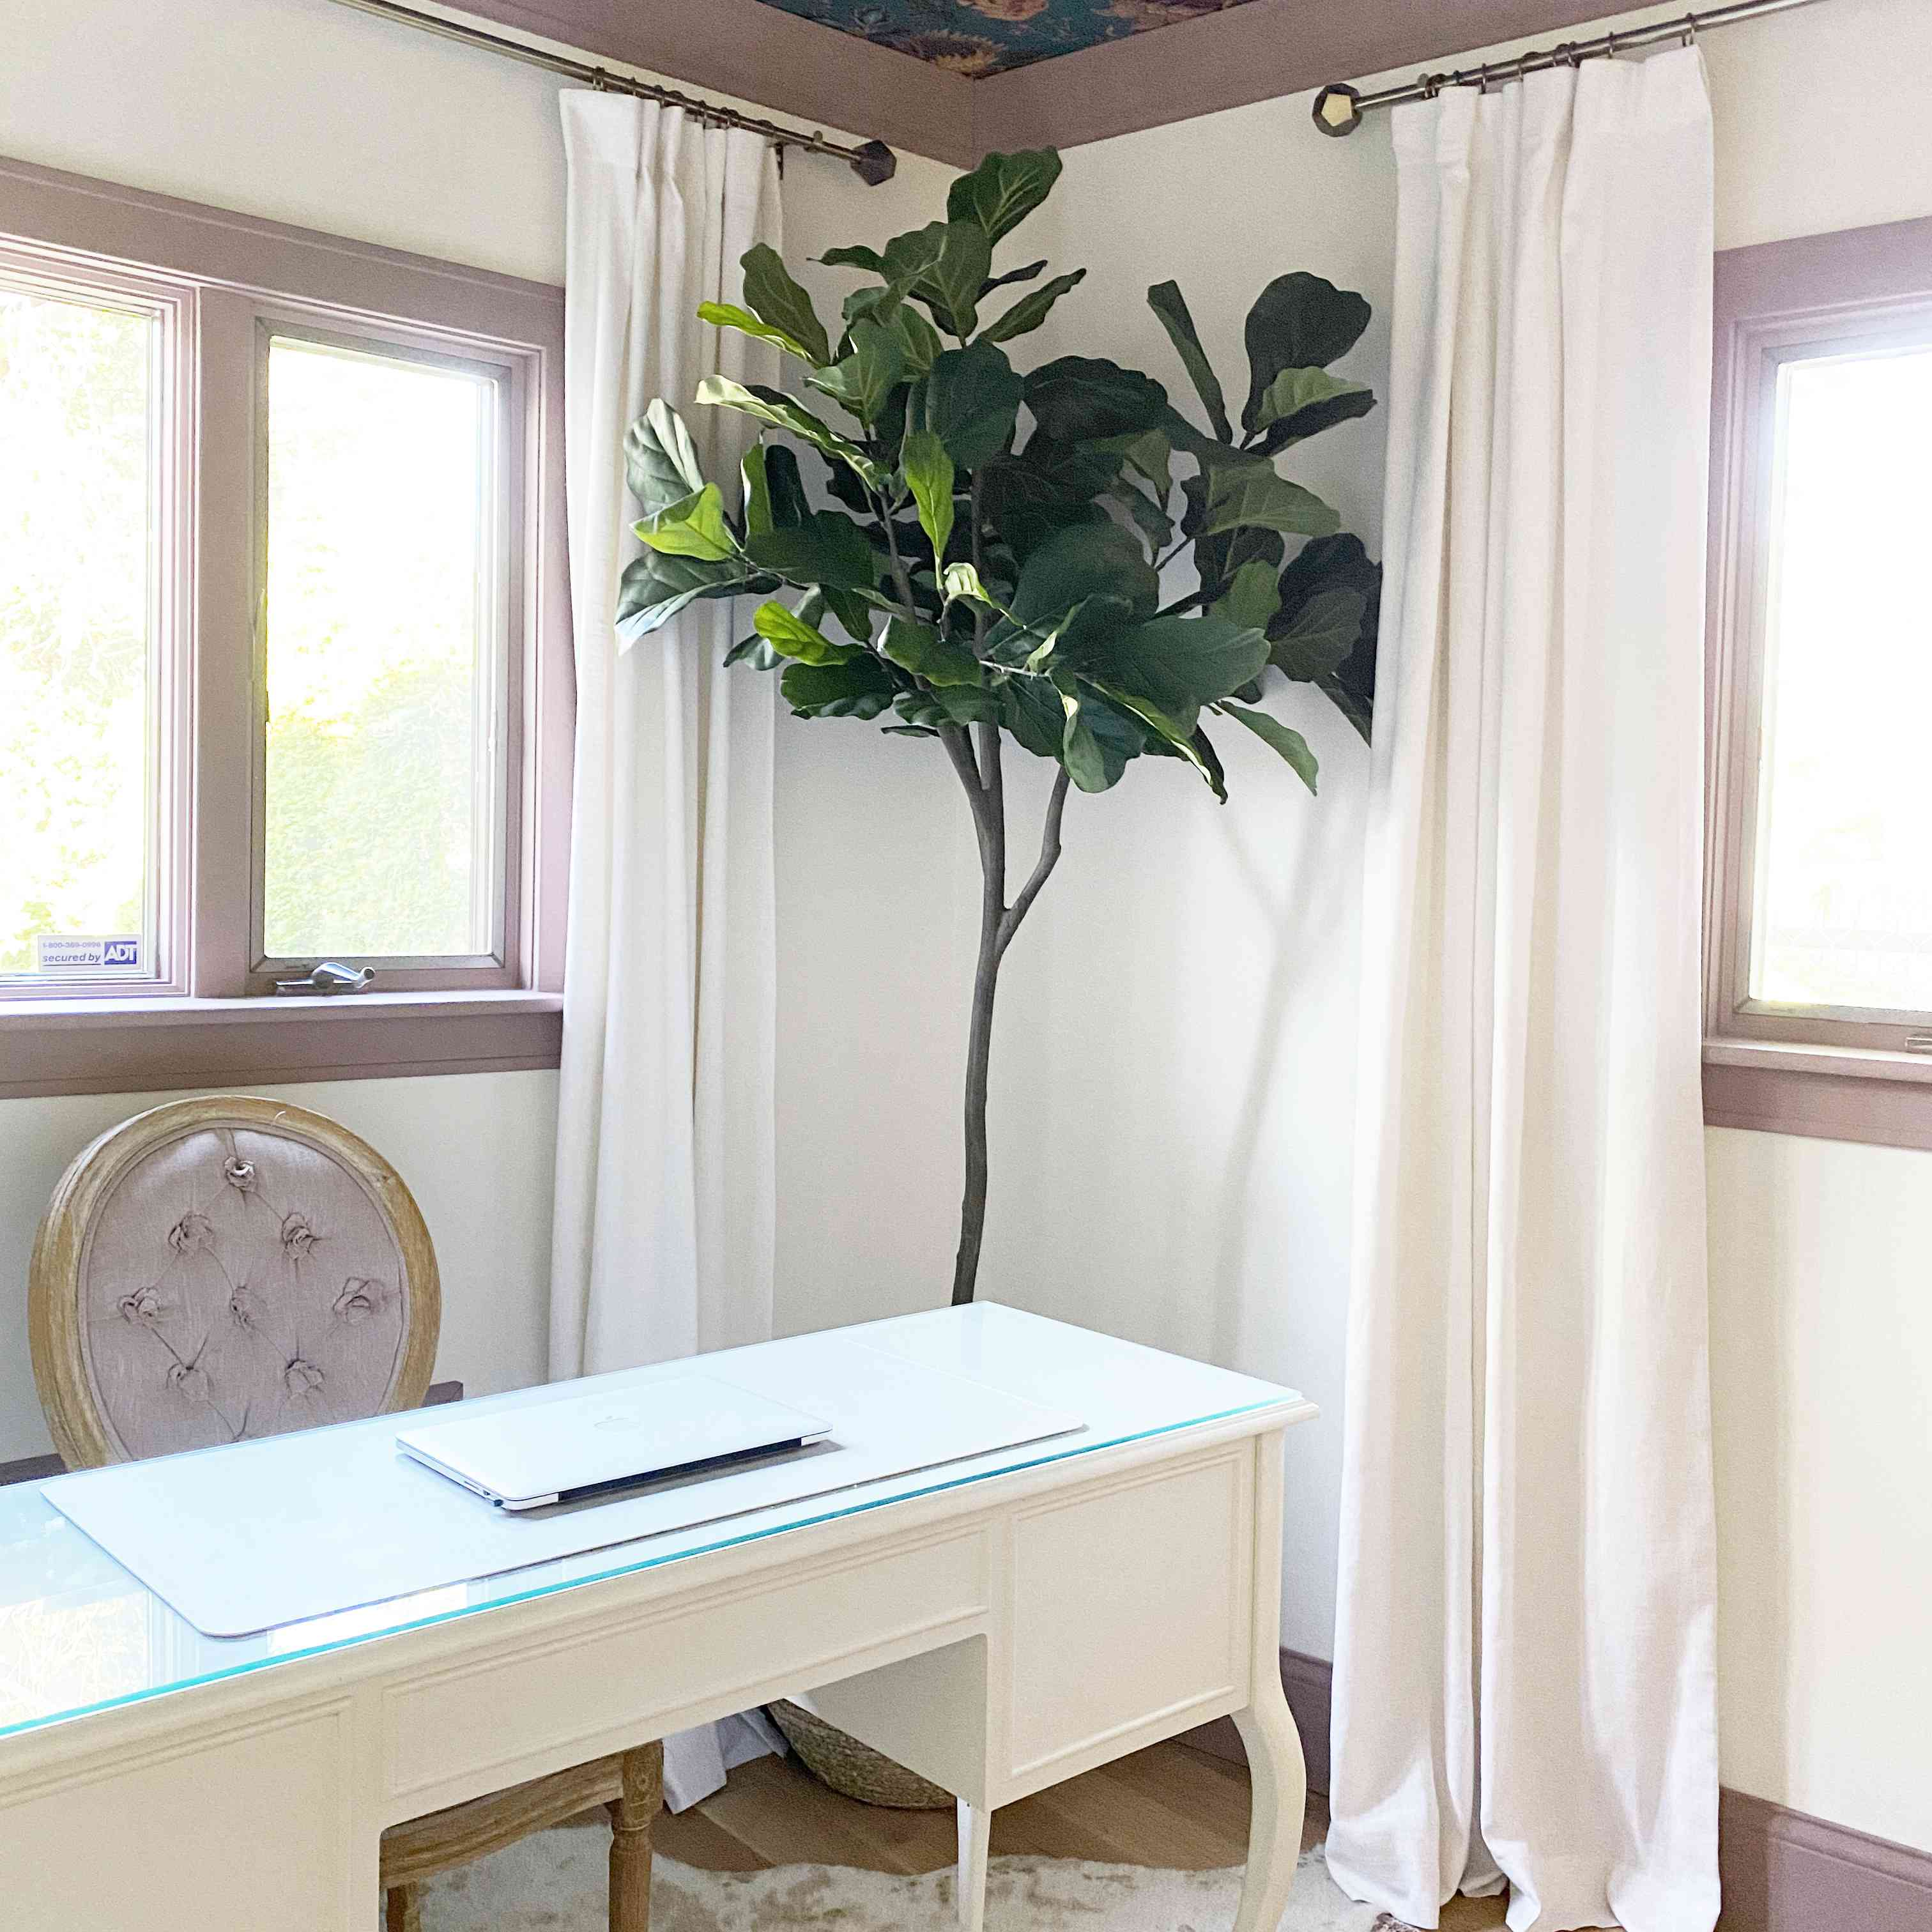 Danielle Chiprut's wallpapered ceiling in her home office